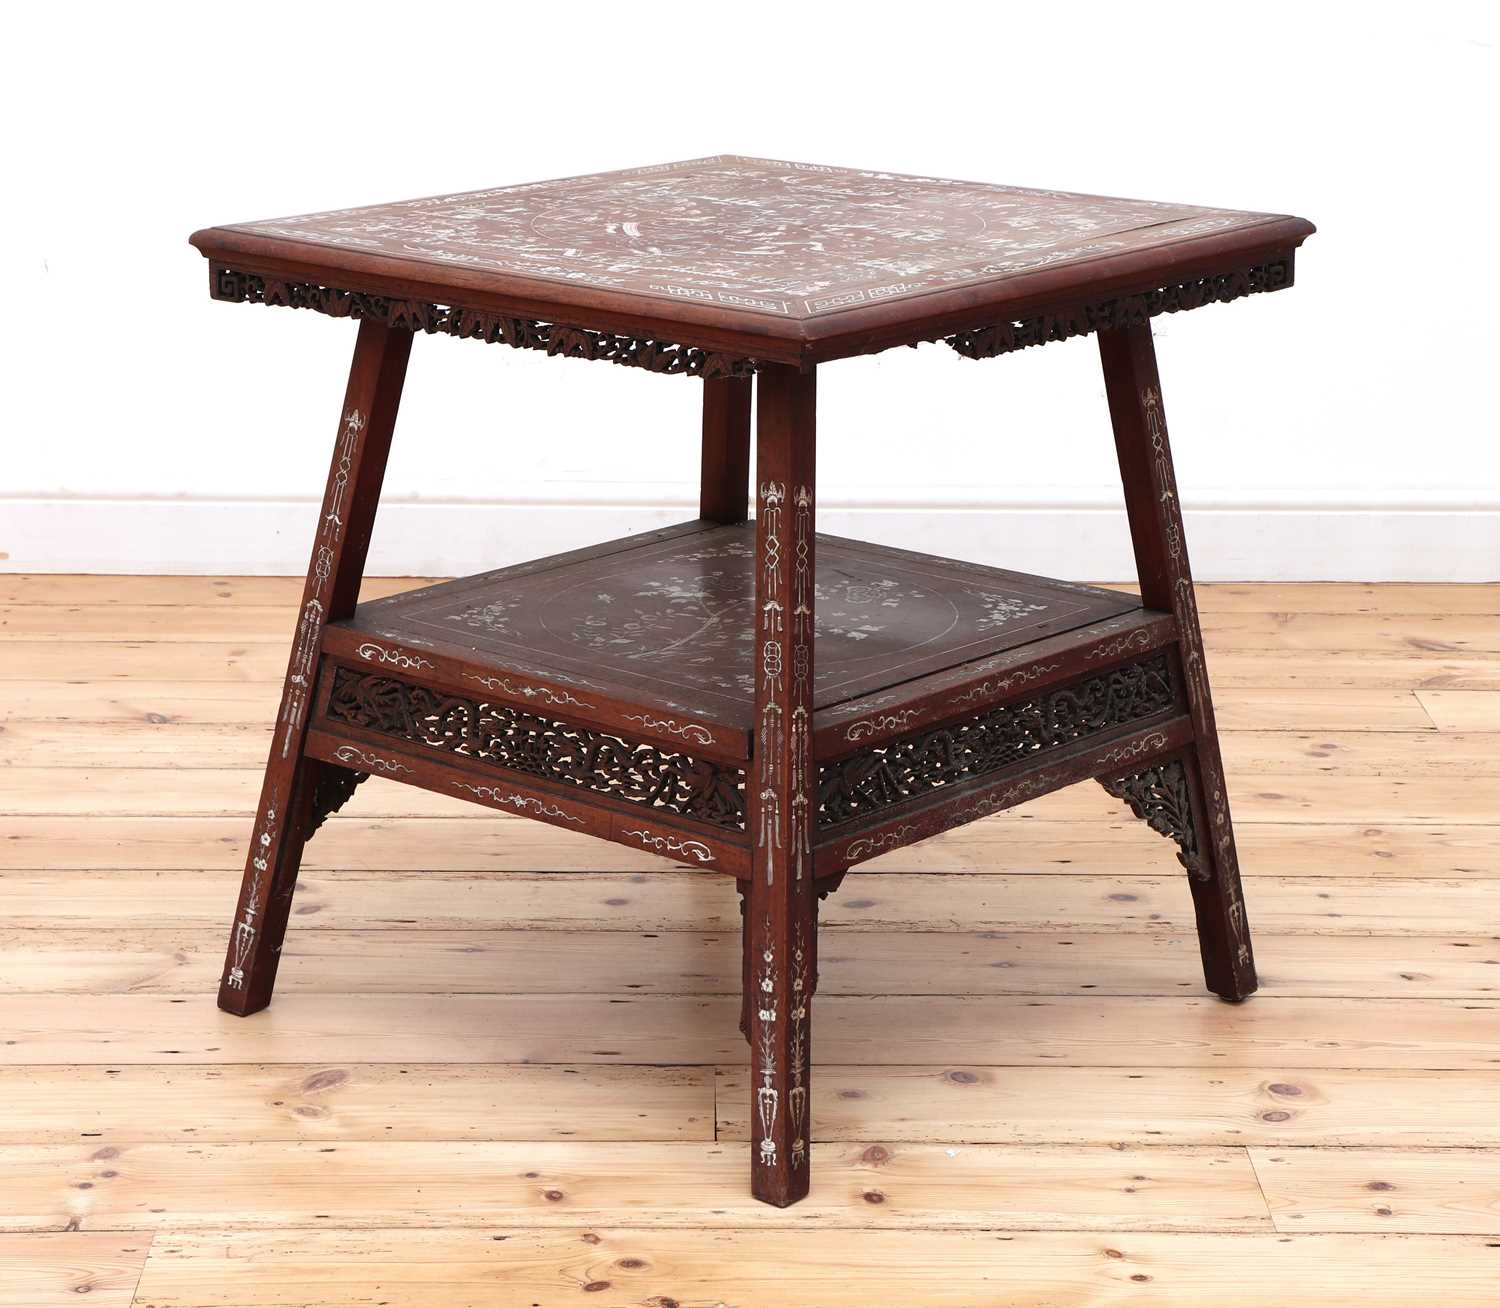 A Chinese hardwood and ivory inlaid occasional table,